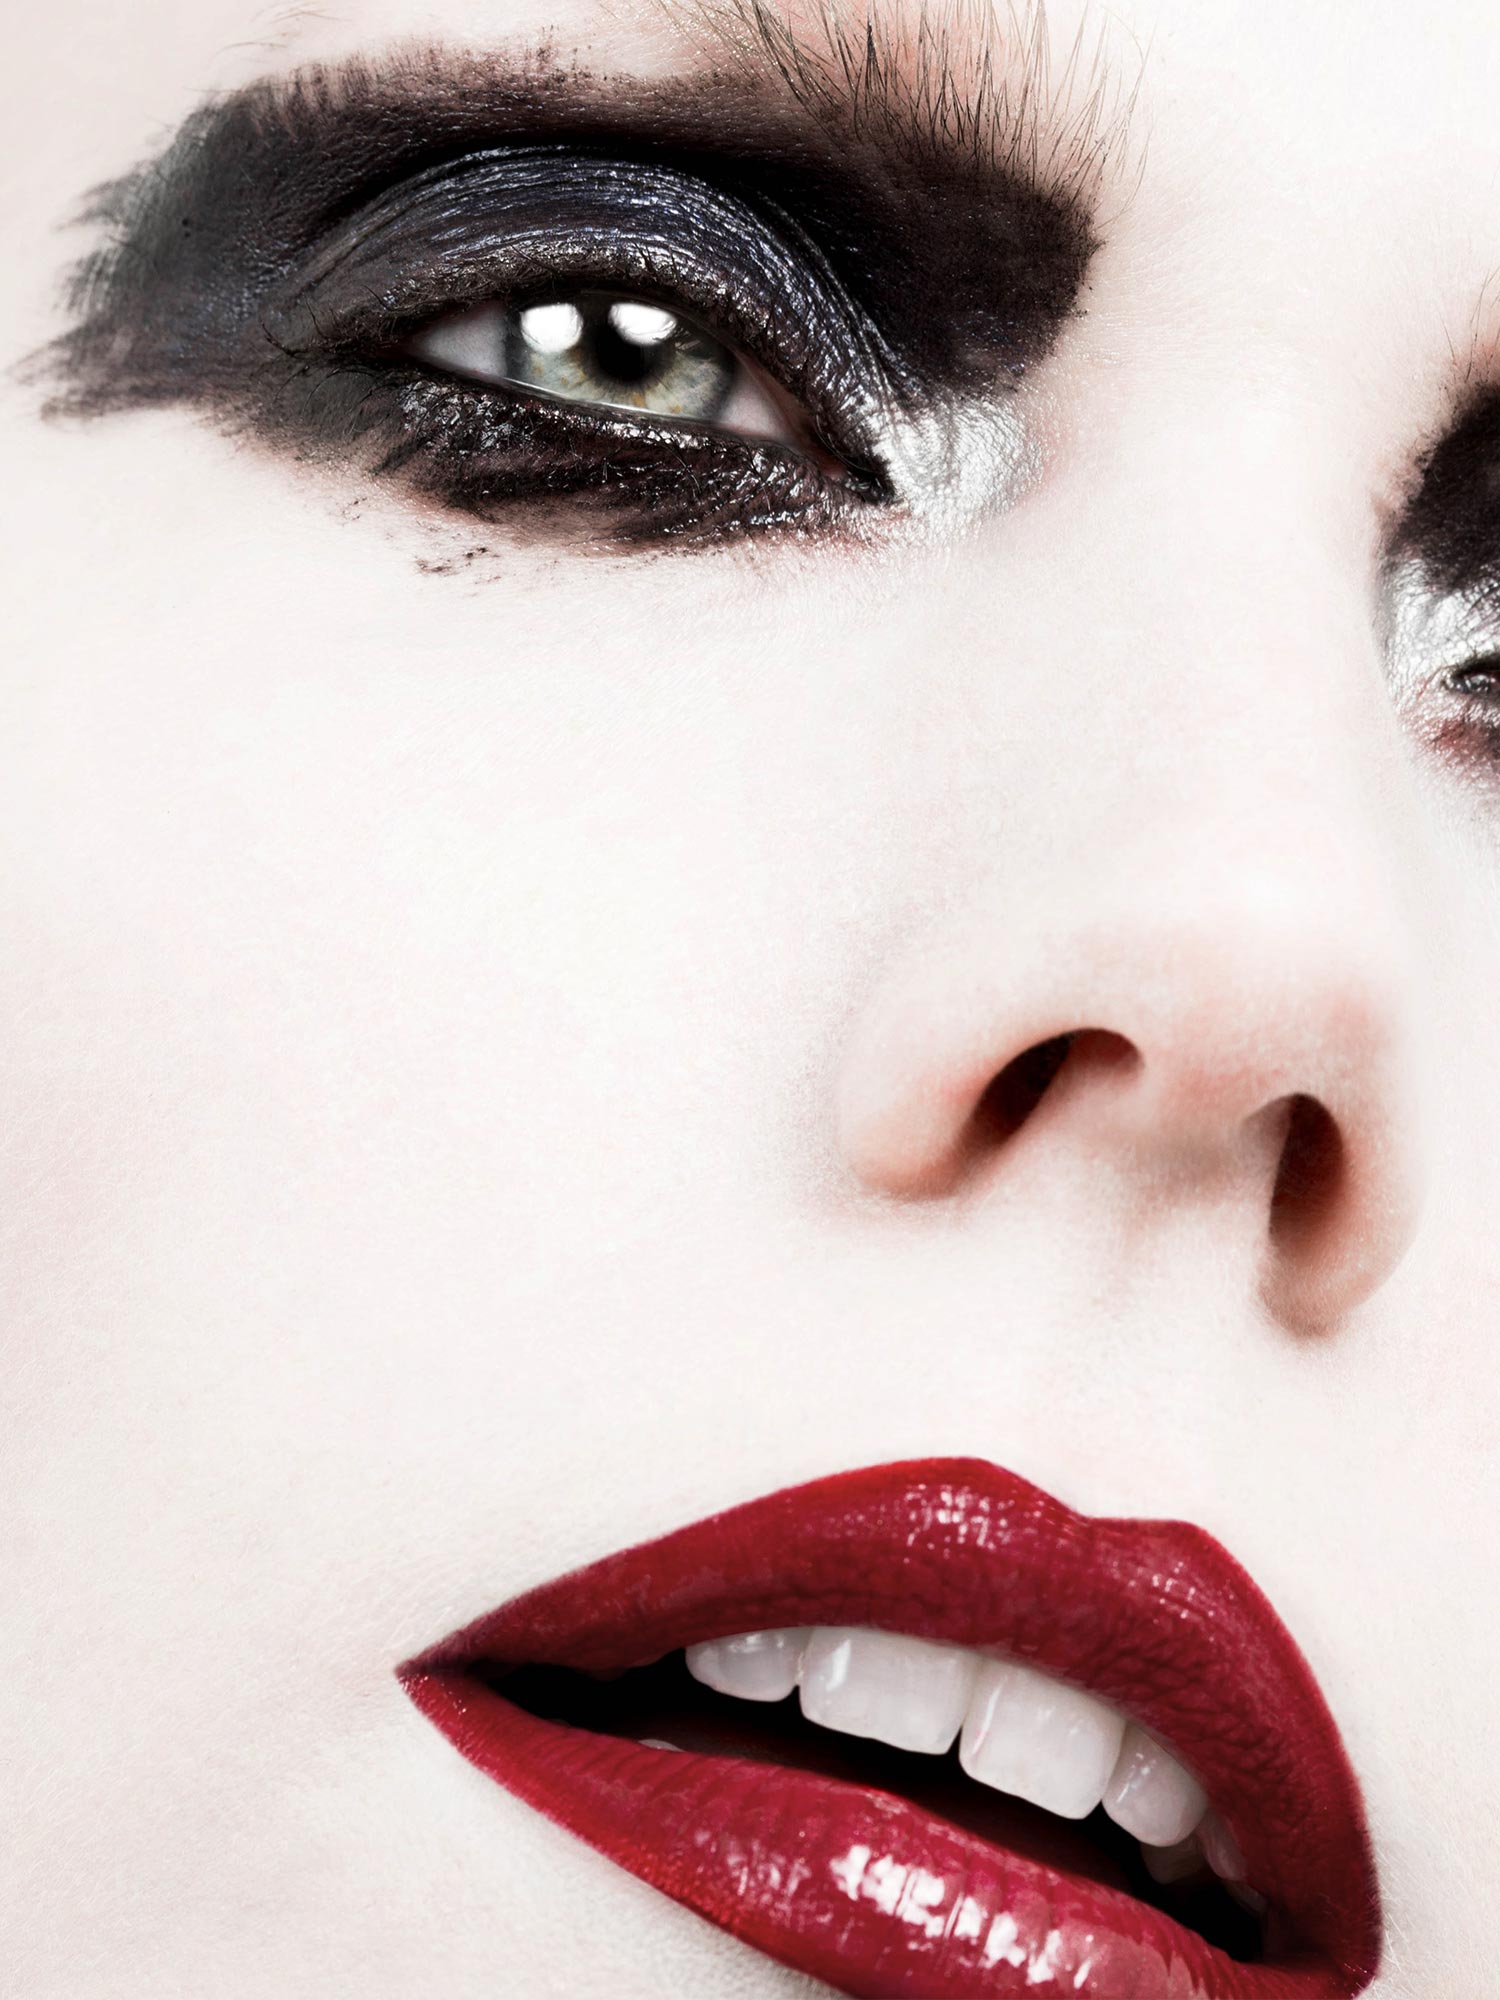 Photography - Vincenzo Aiello  Makeup - Elizabeth Hsieh  Model - Caroline Rausch @ Storm